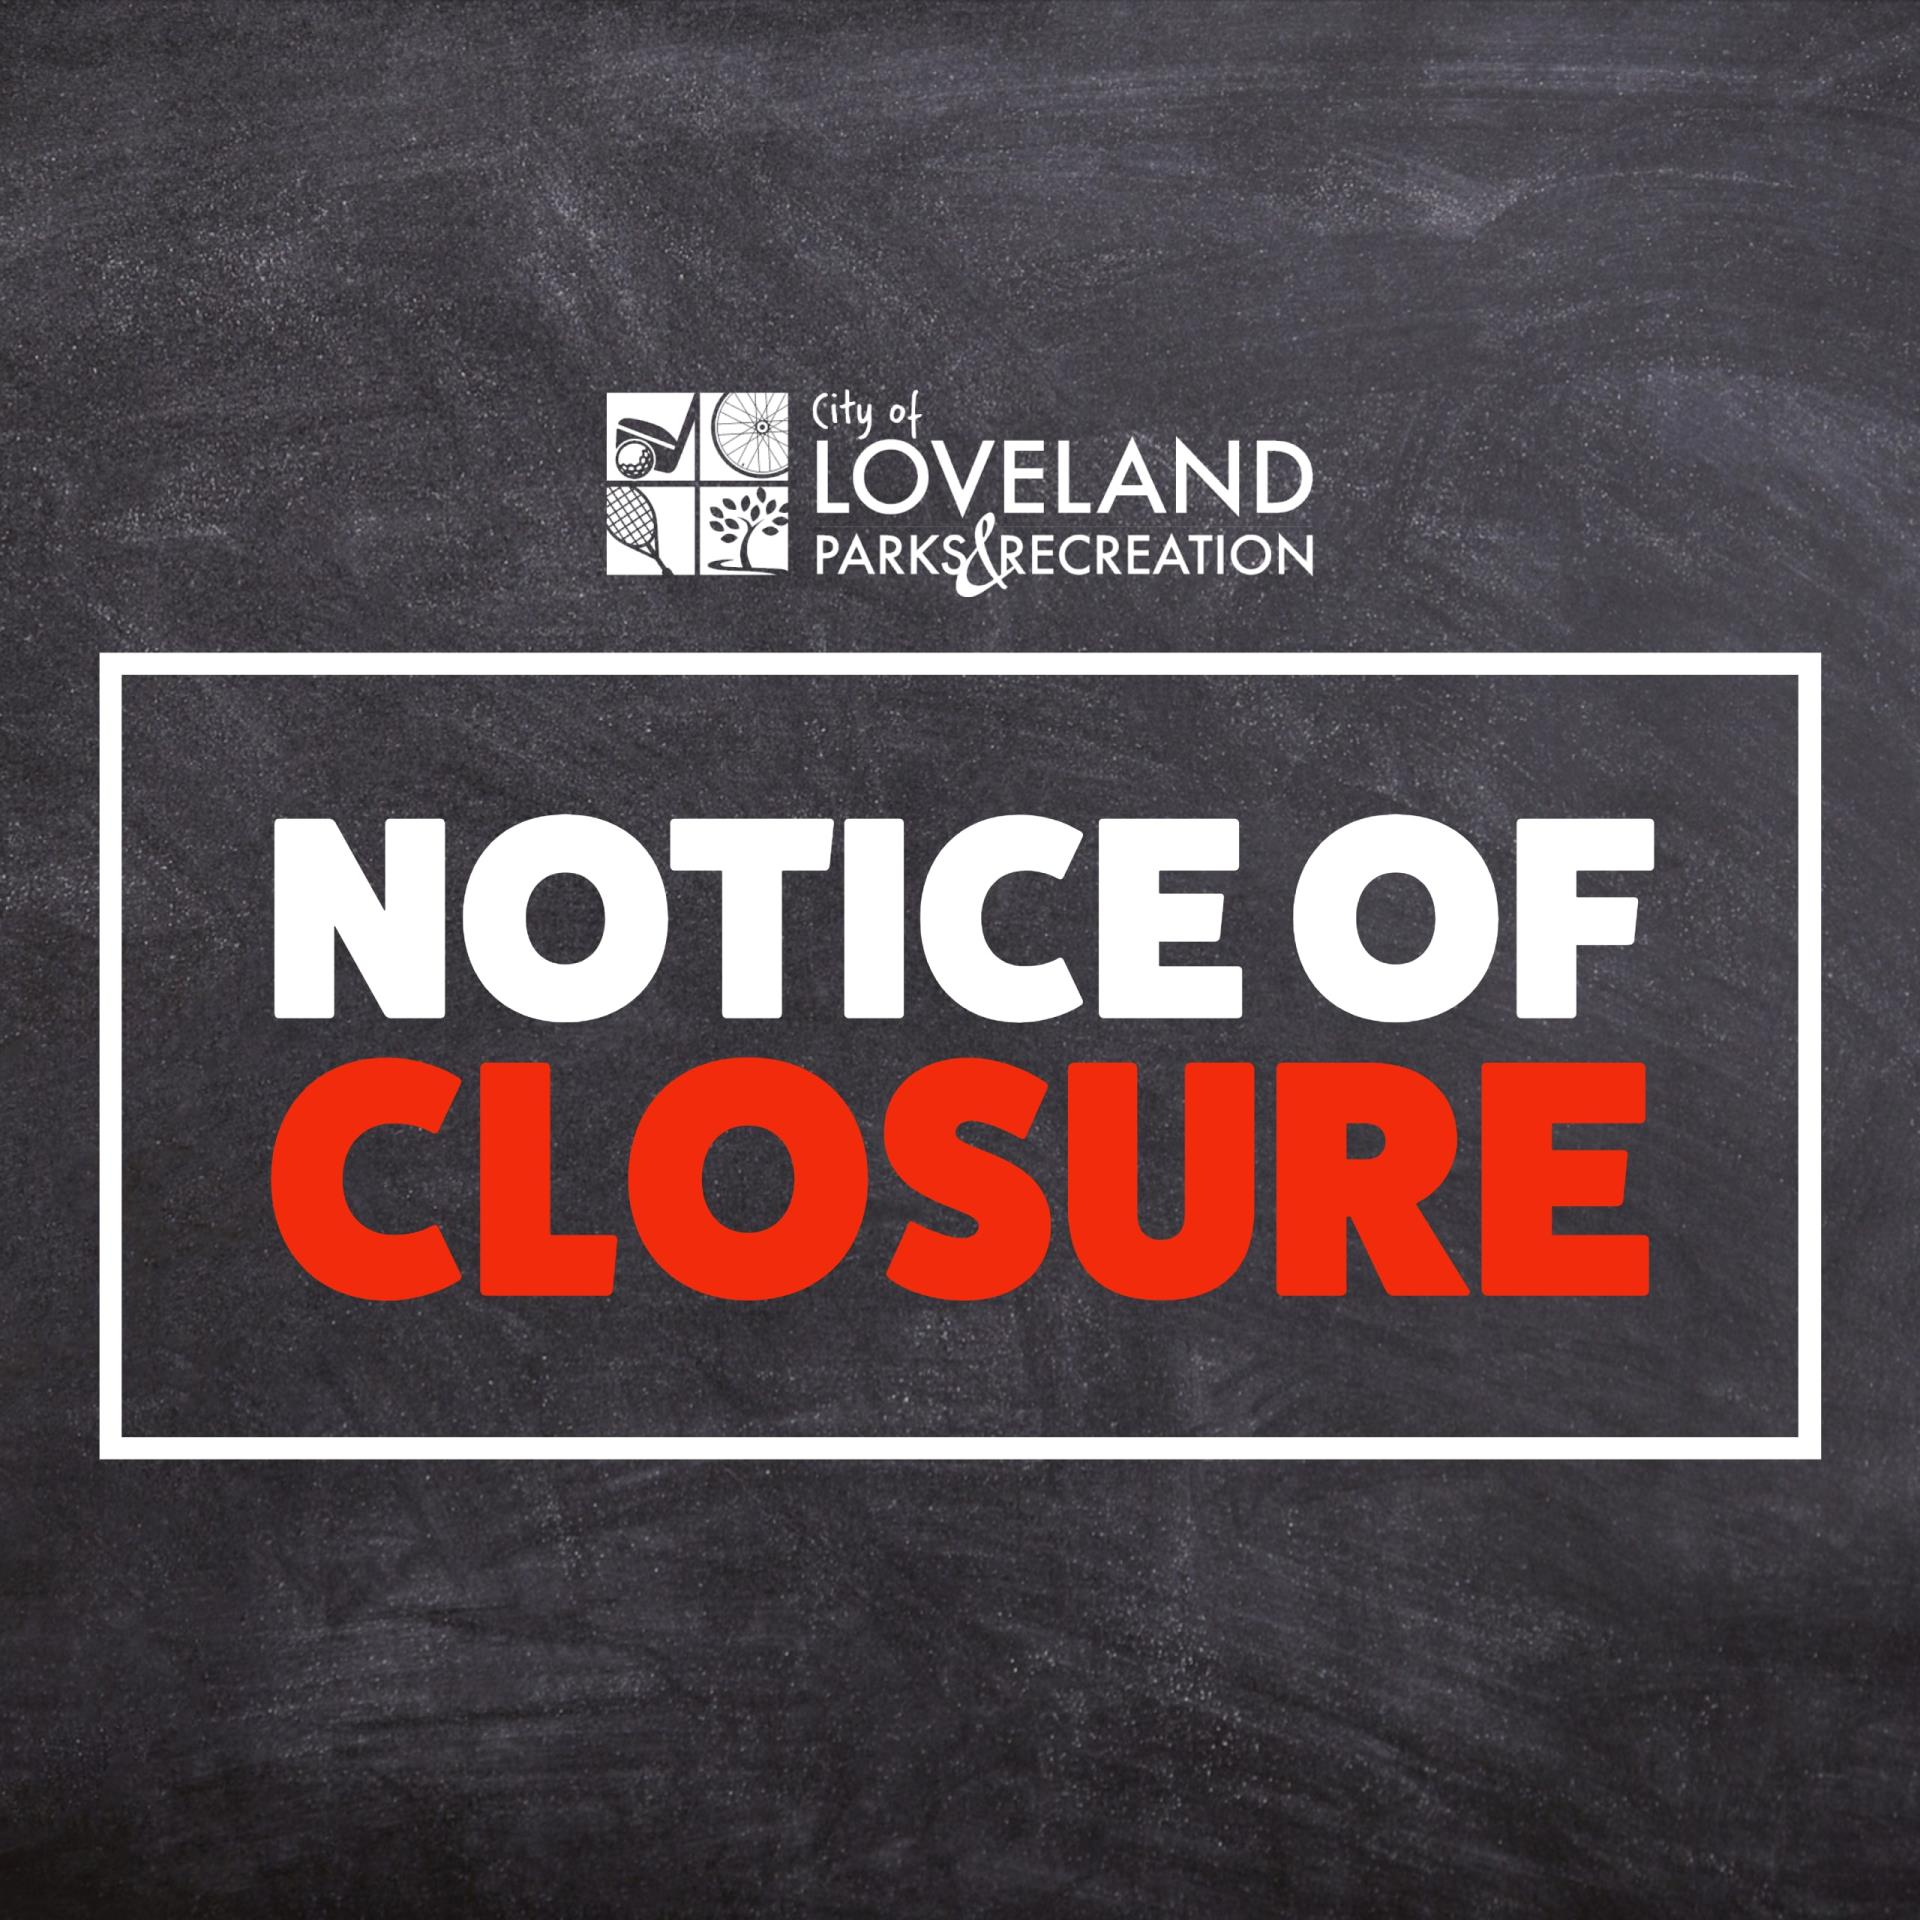 Notice of closure from Loveland Parks & Recreation